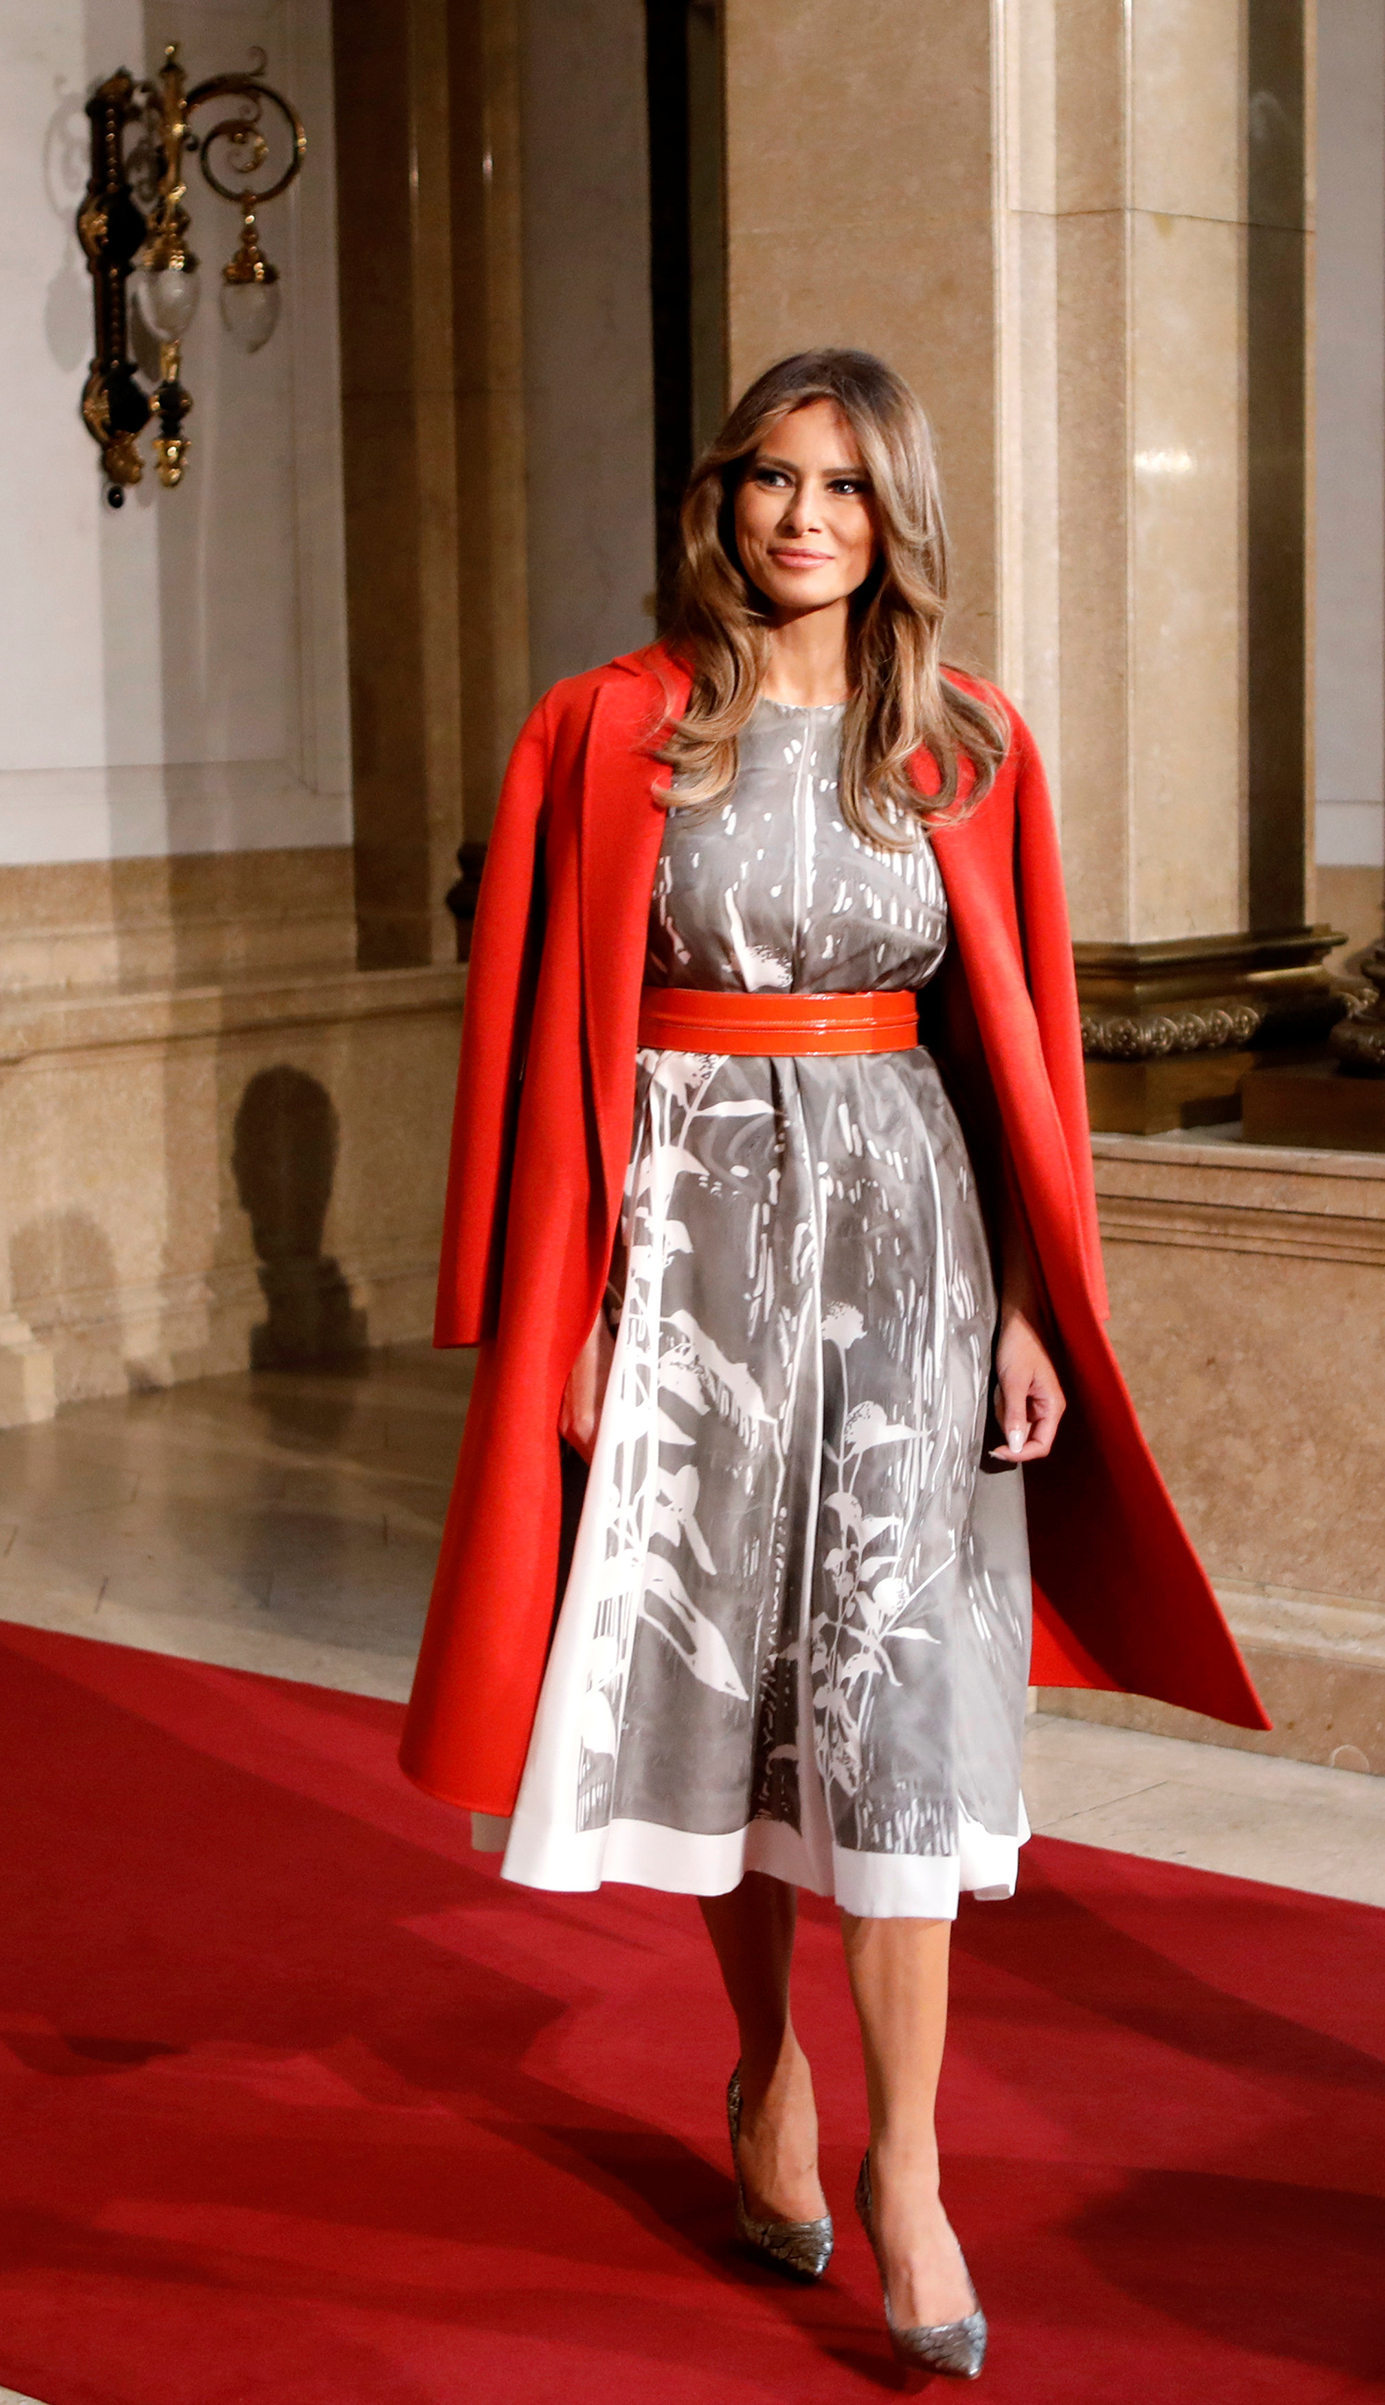 First lady Melania Trump wearing a Bottega Veneta red coat and a Jil Sander silk dress, arrives to attend the partners' programme at the city hall during the G20 summit in Hamburg, northern Germany, on July 8, 2017.